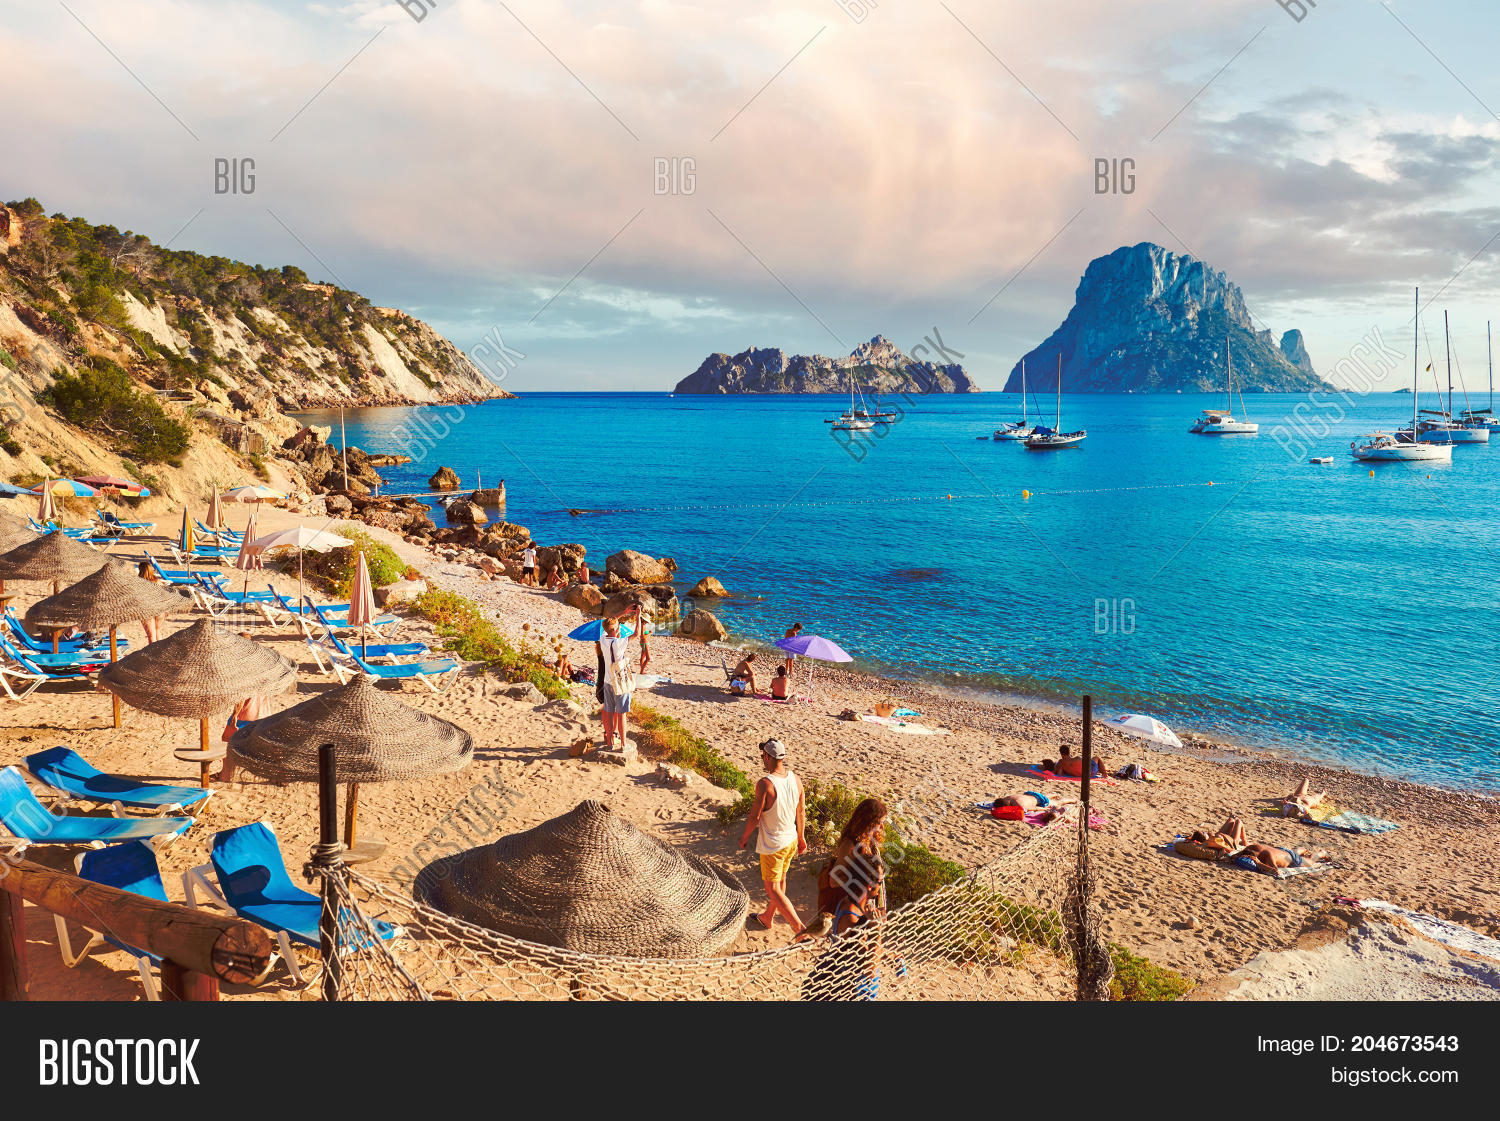 Ibiza Island Spain   Image   Photo  Free Trial    Bigstock Ibiza Island Spain   June 12 2017  People enjoying the summer at Cala d